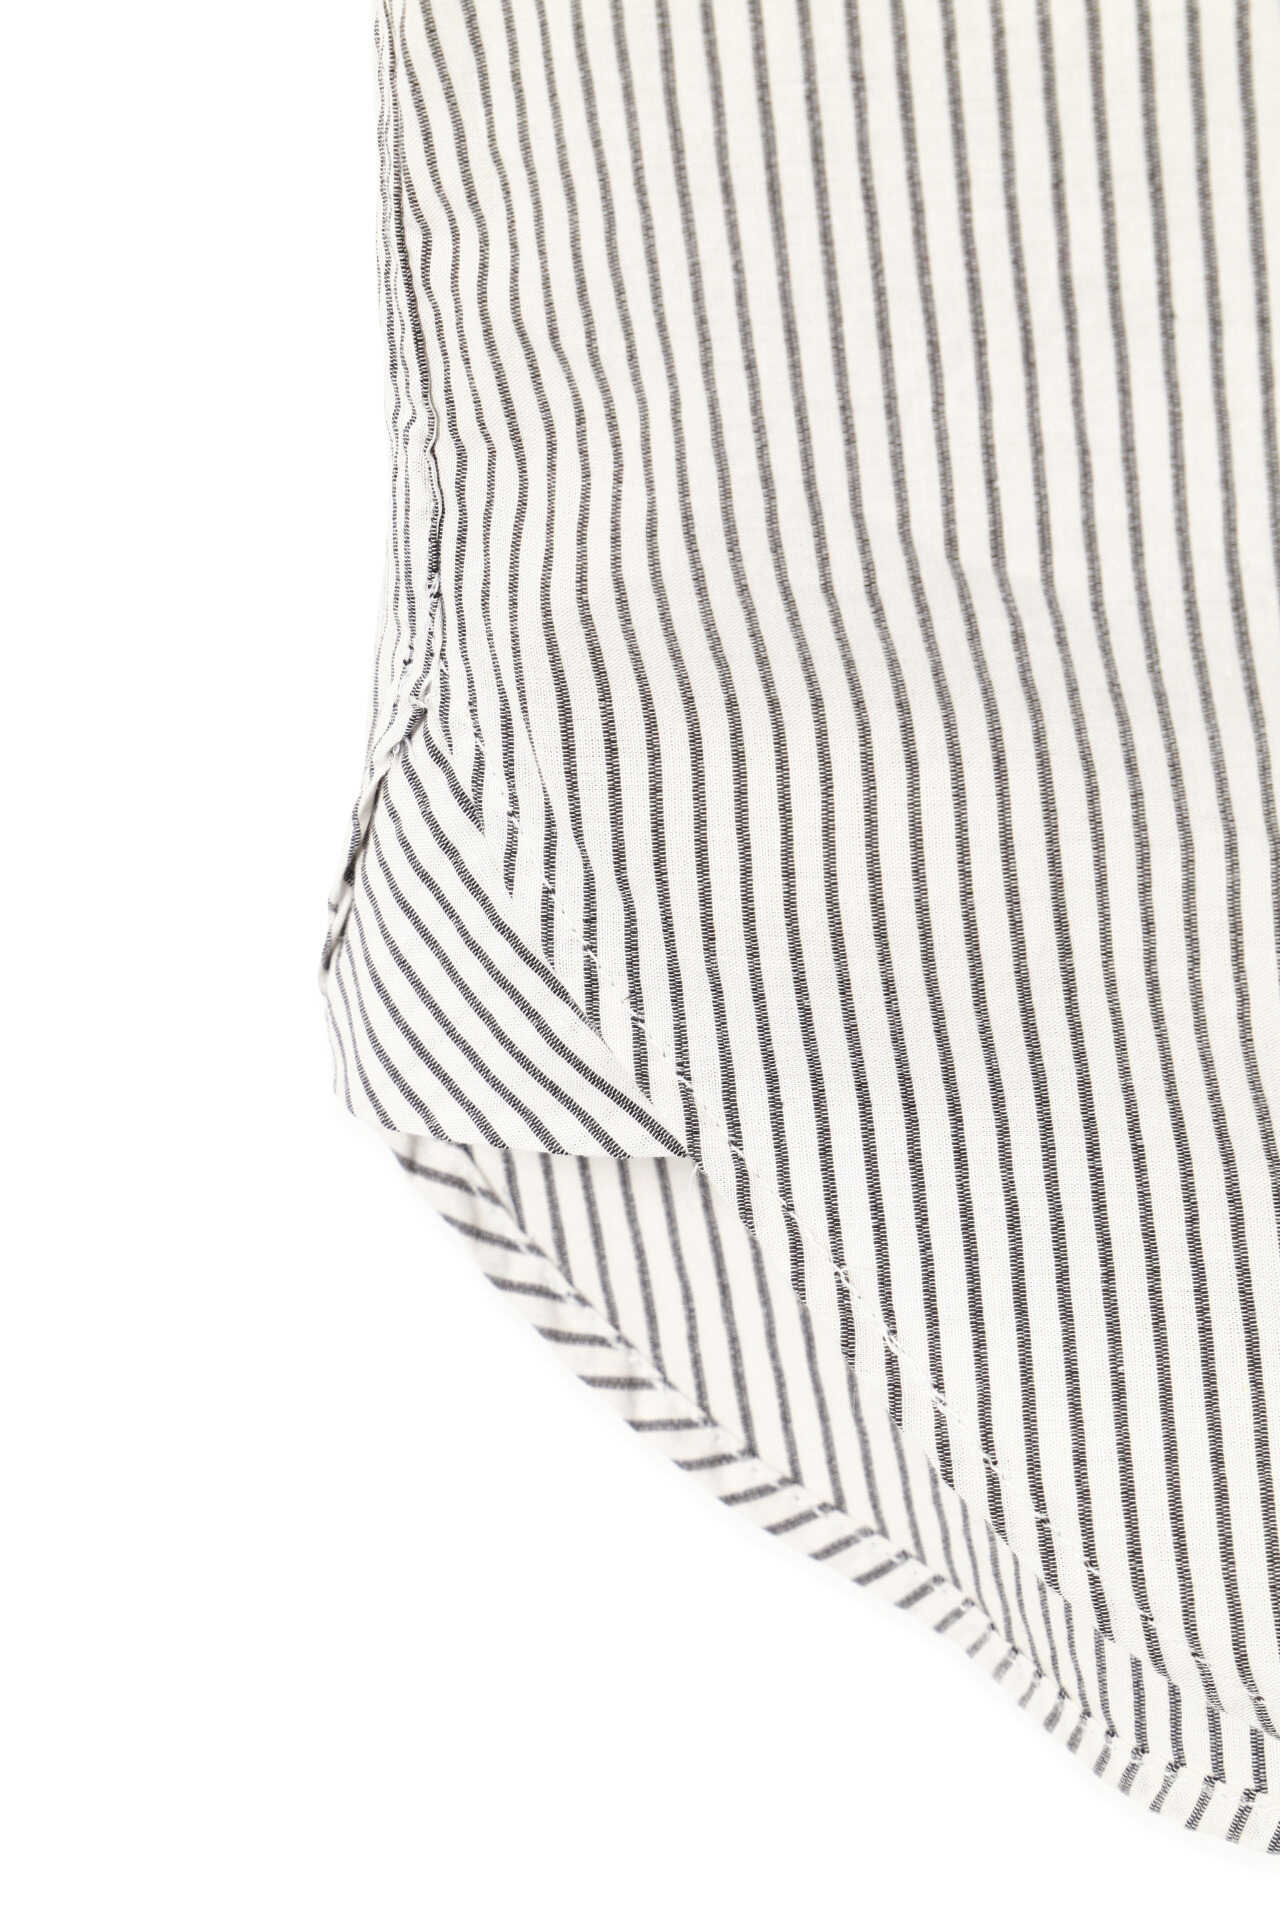 COTTON LINEN STRIPE6